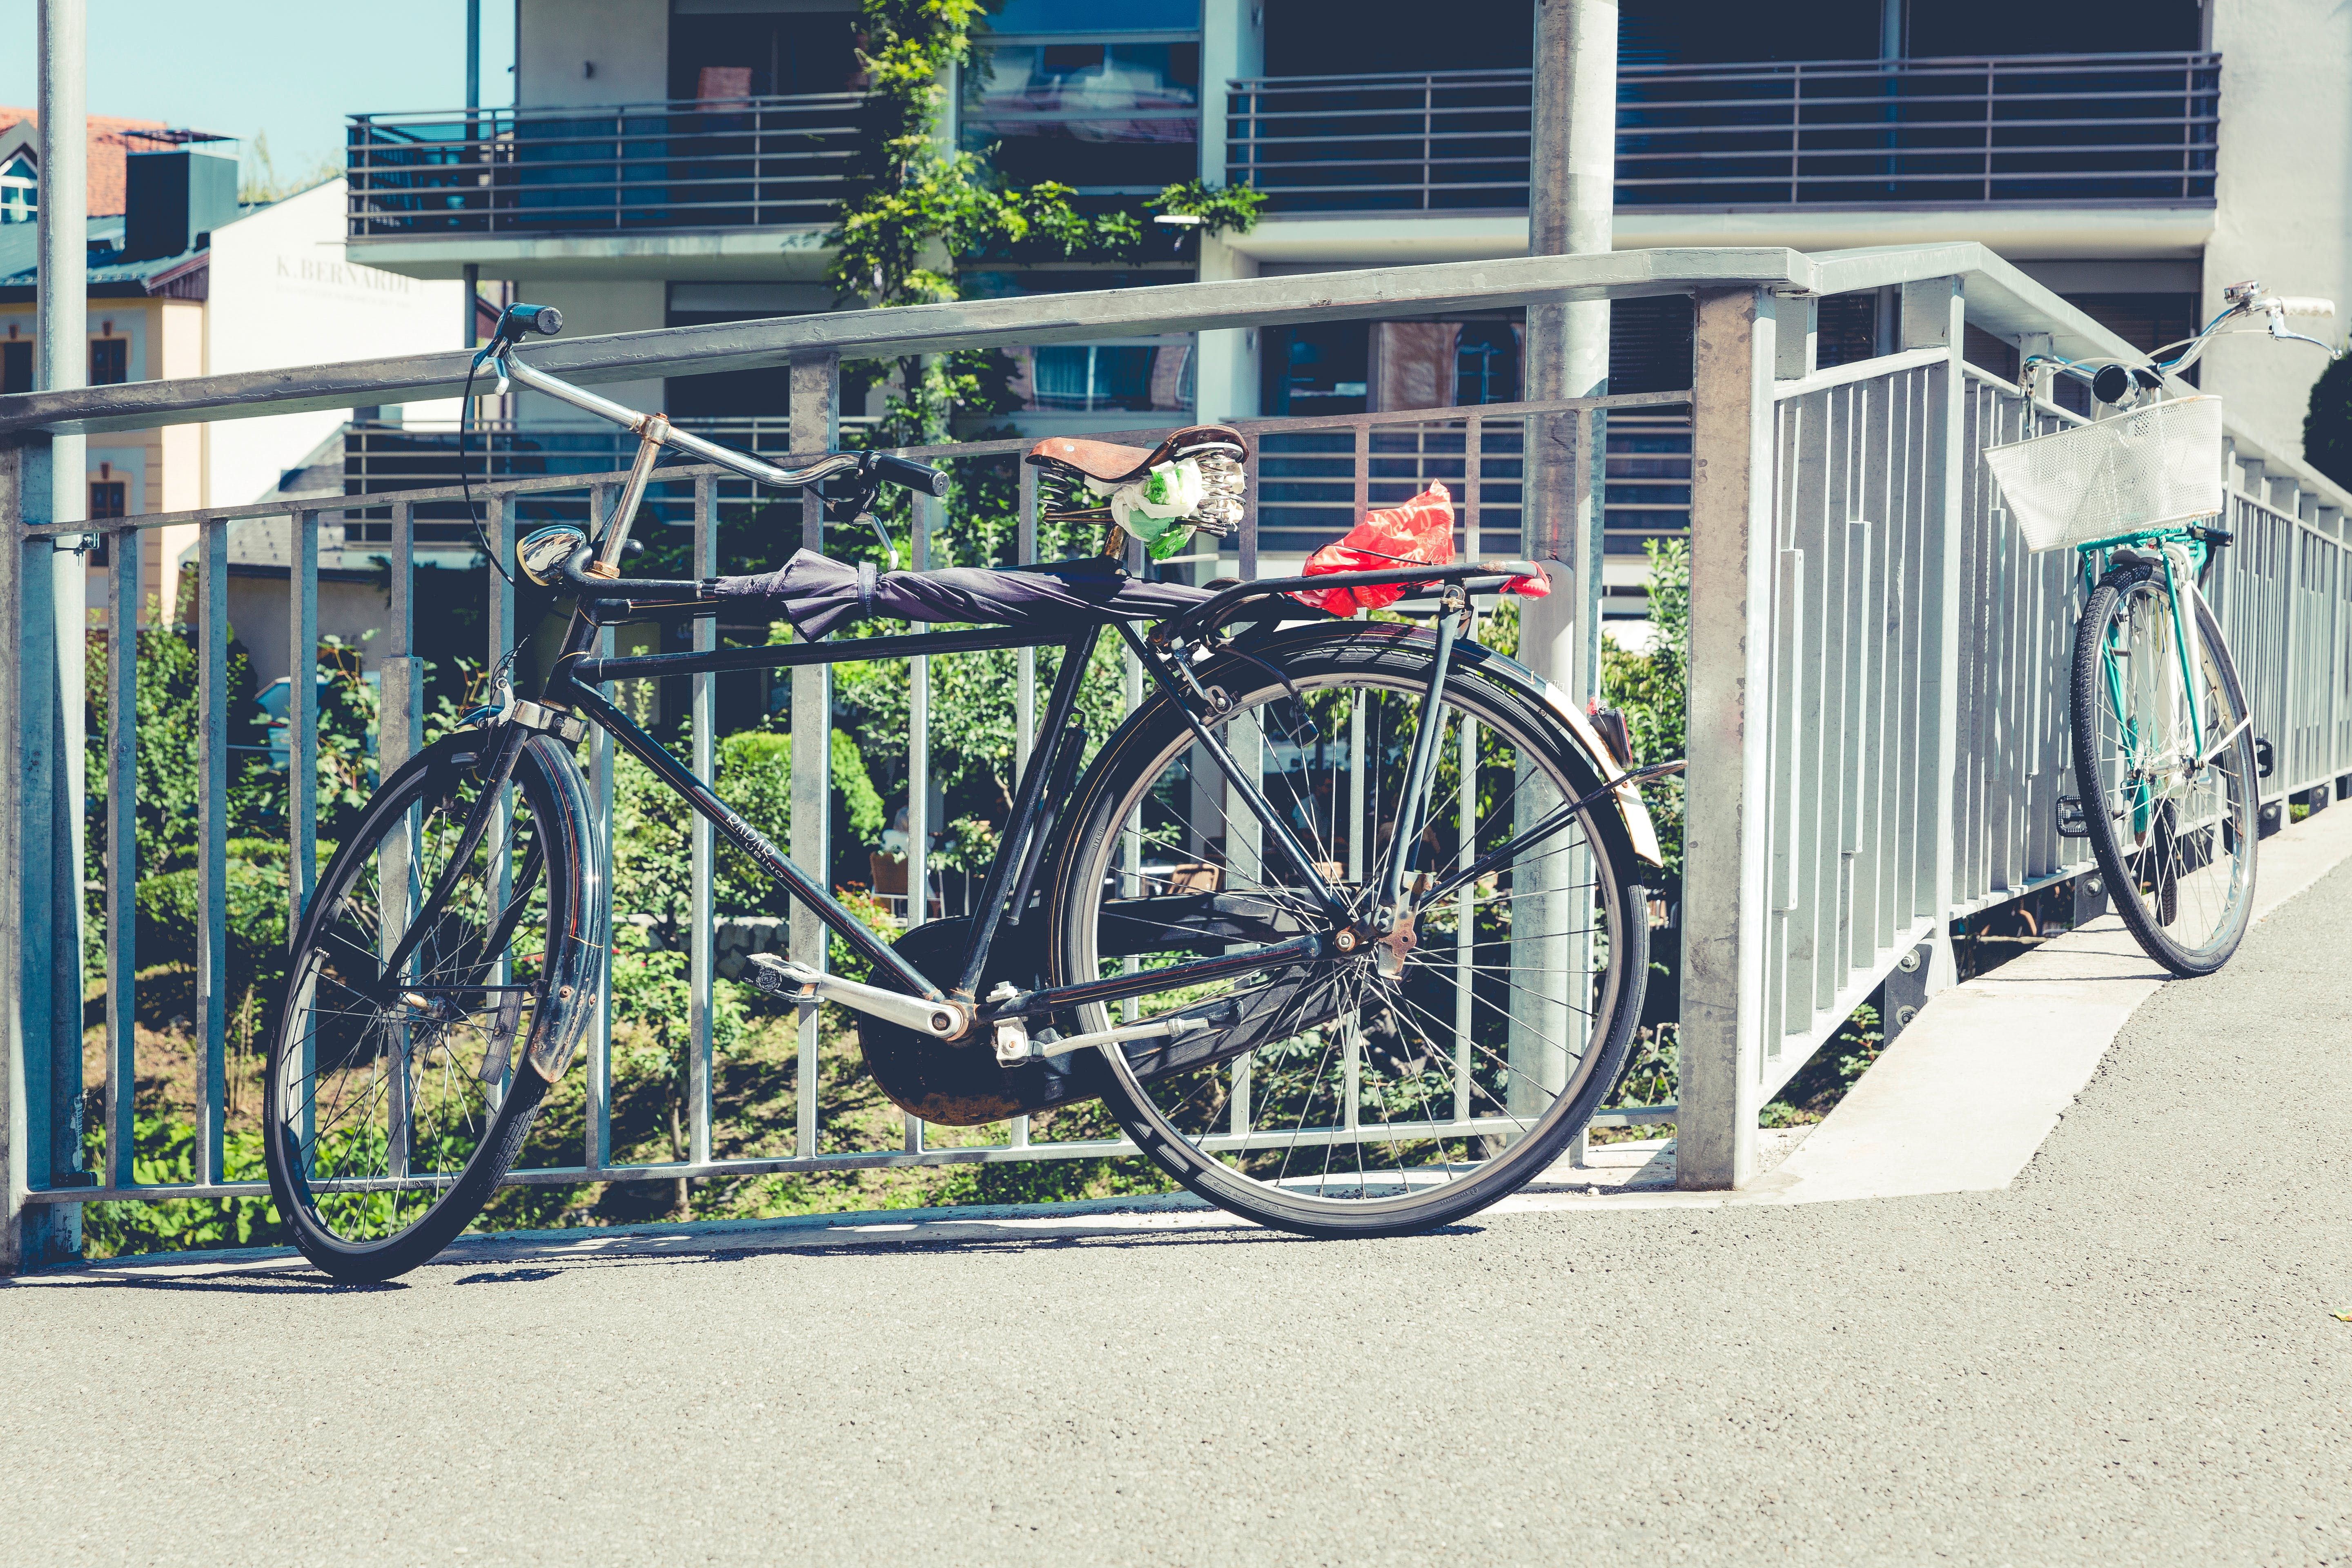 Two Parked Bikes on Gray Metal Rails